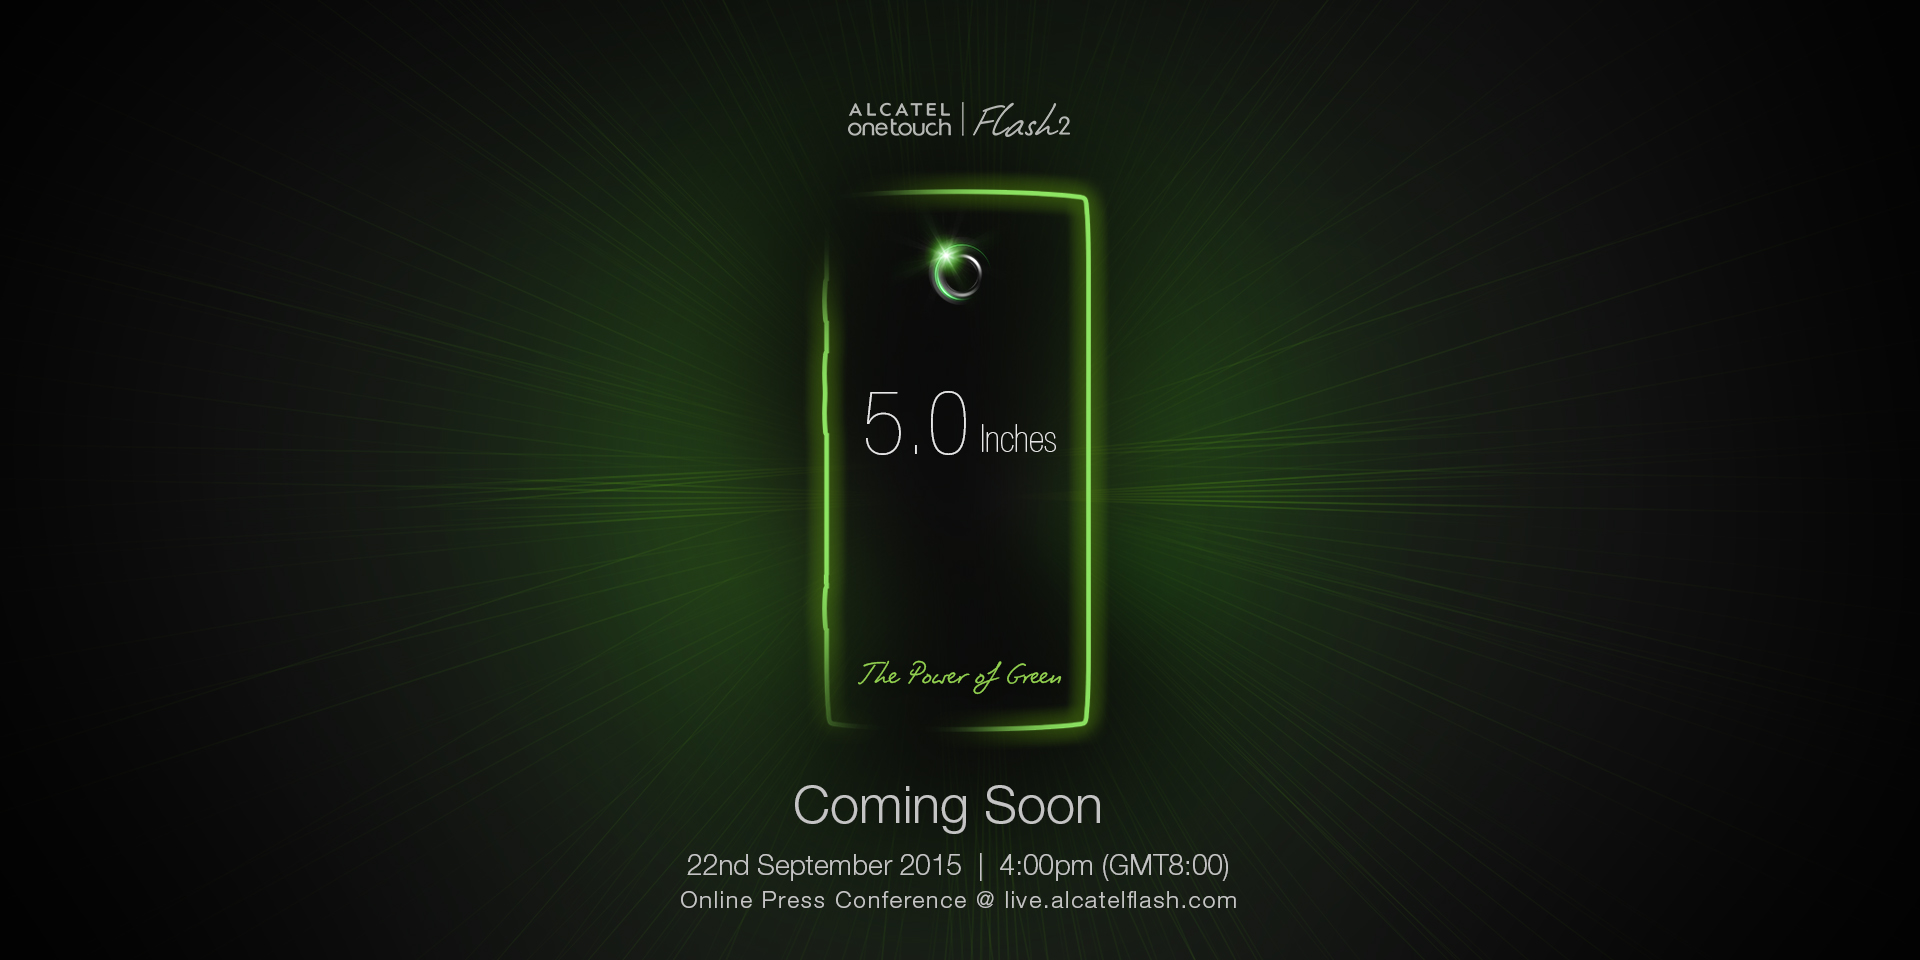 Alcatel One Touch Flash  – The Power of Green